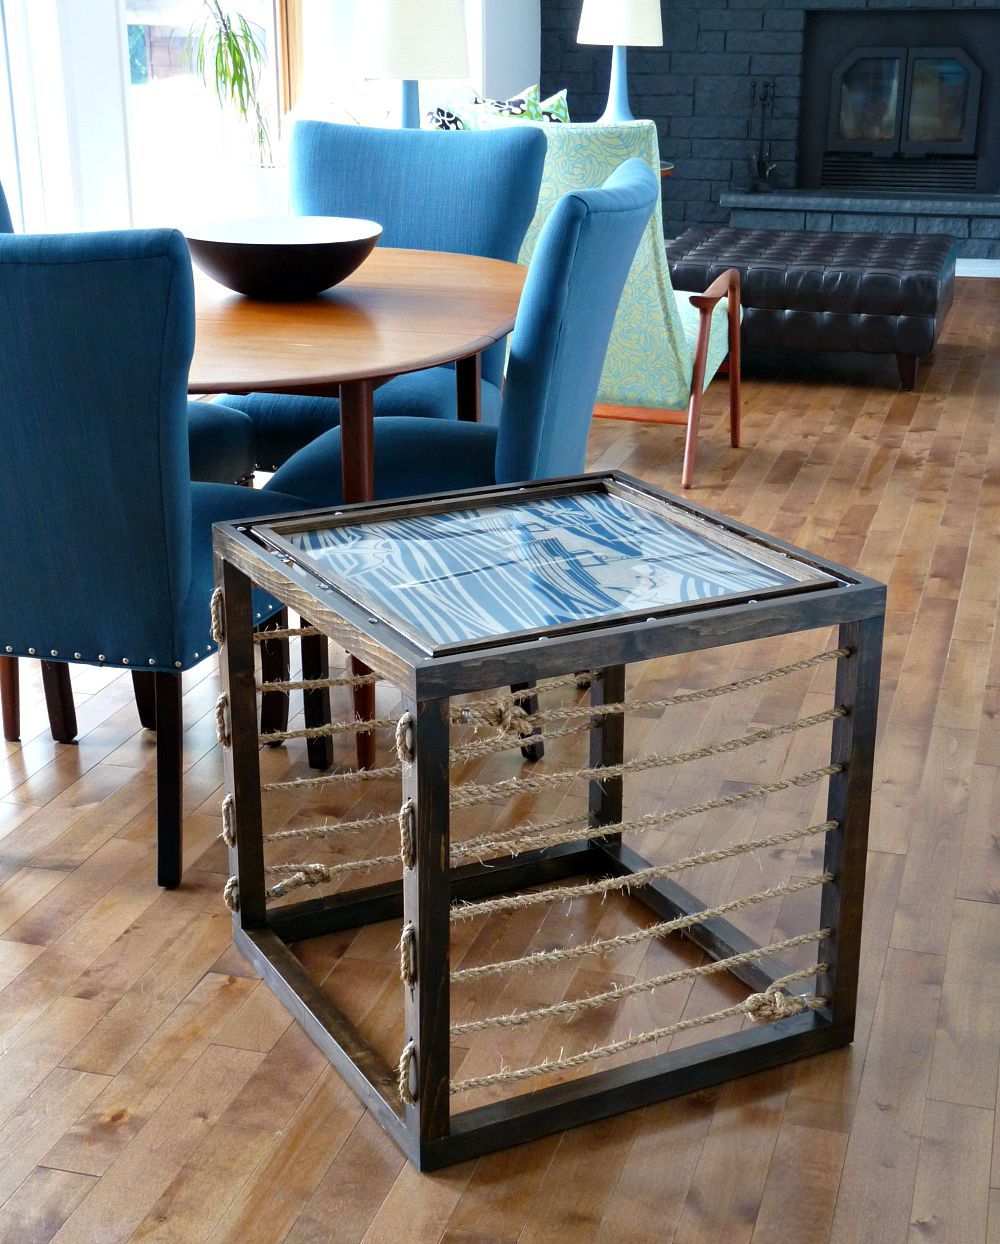 diy nautical accent table dans lakehouse rustoleum after loveyourwood contest ashley furniture end tables and coffee free topper quilt patterns drawer nightstand bunnings sun